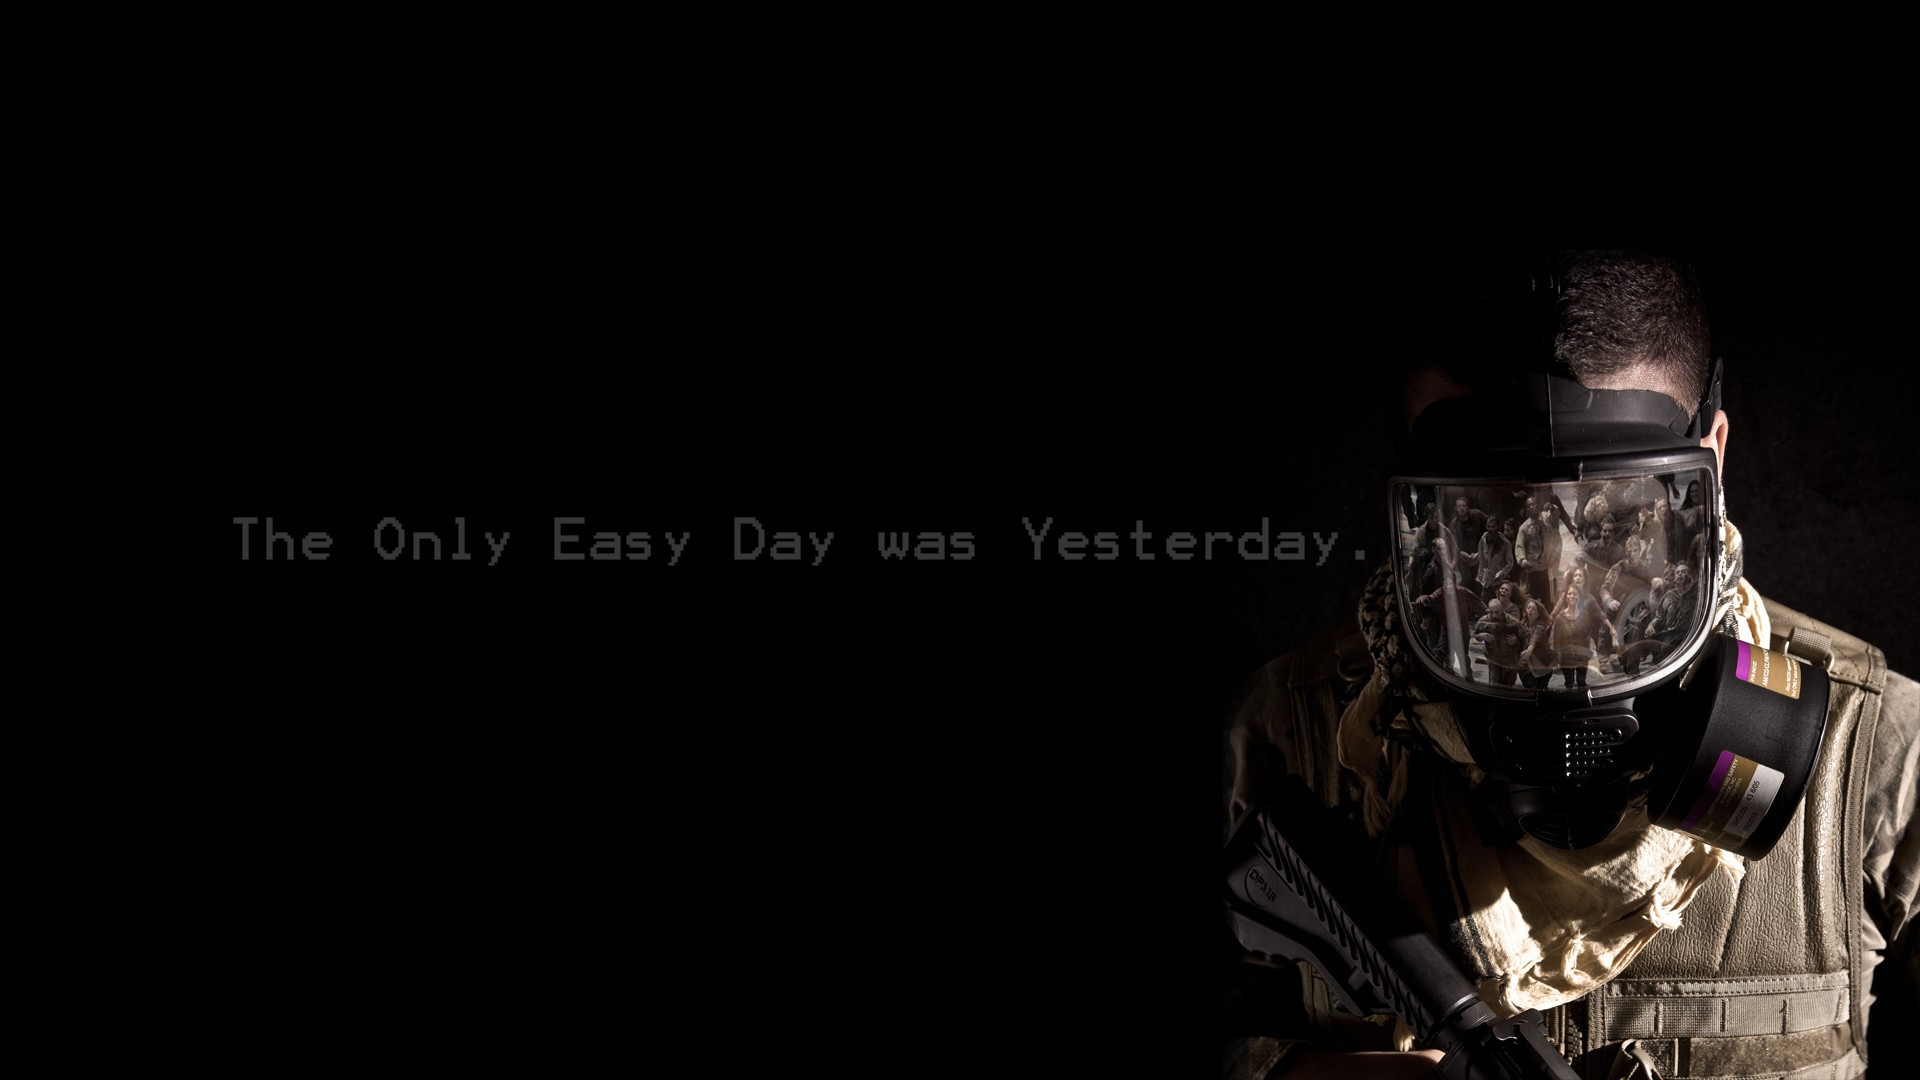 The Only Easy Day Was Yesterday Full Hd Wallpaper And HD Wallpapers Download Free Images Wallpaper [1000image.com]